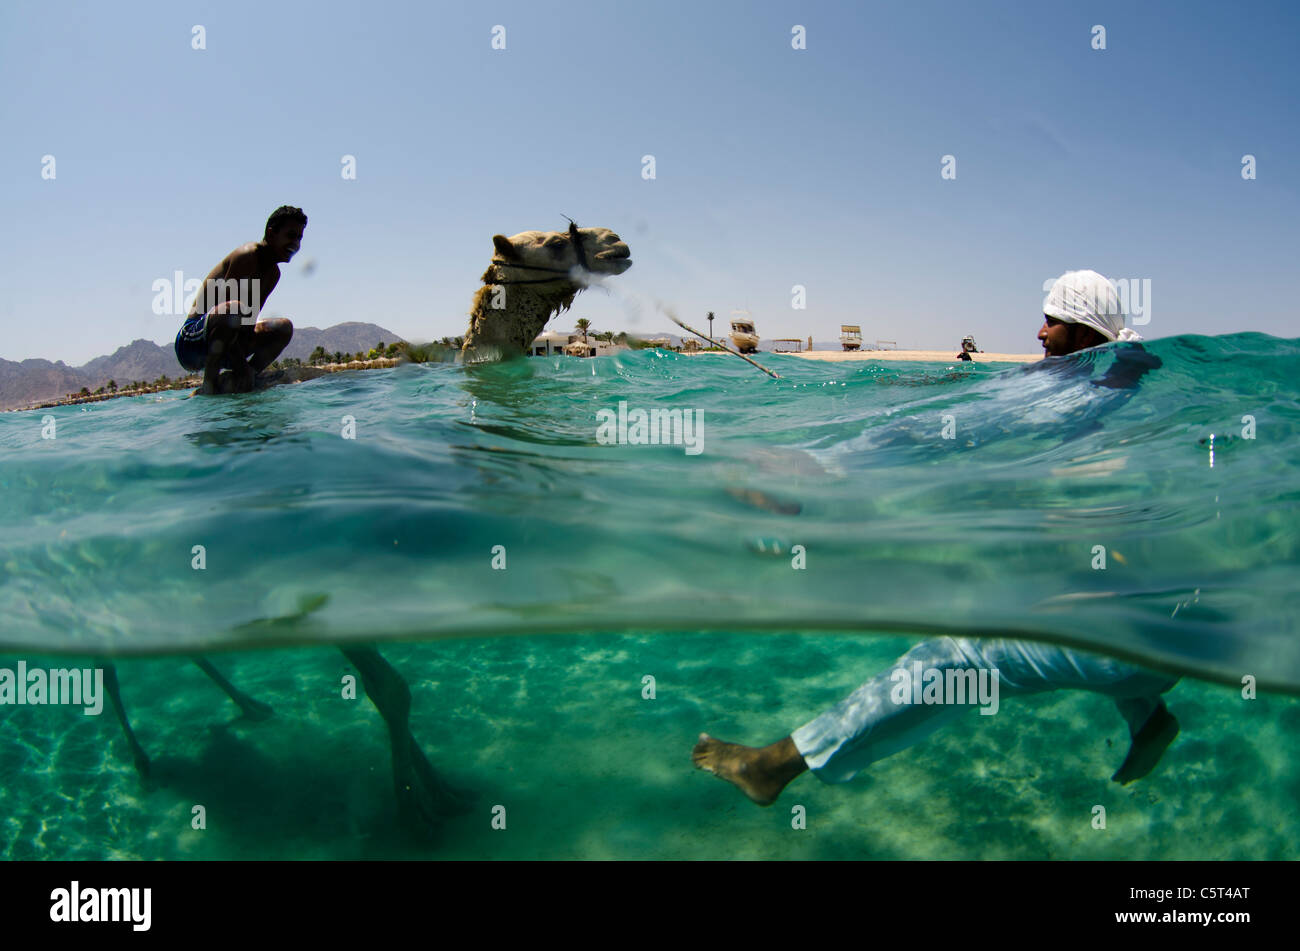 Camel having refreshing bath in Nuweiba, Red Sea, Egypt - Stock Image